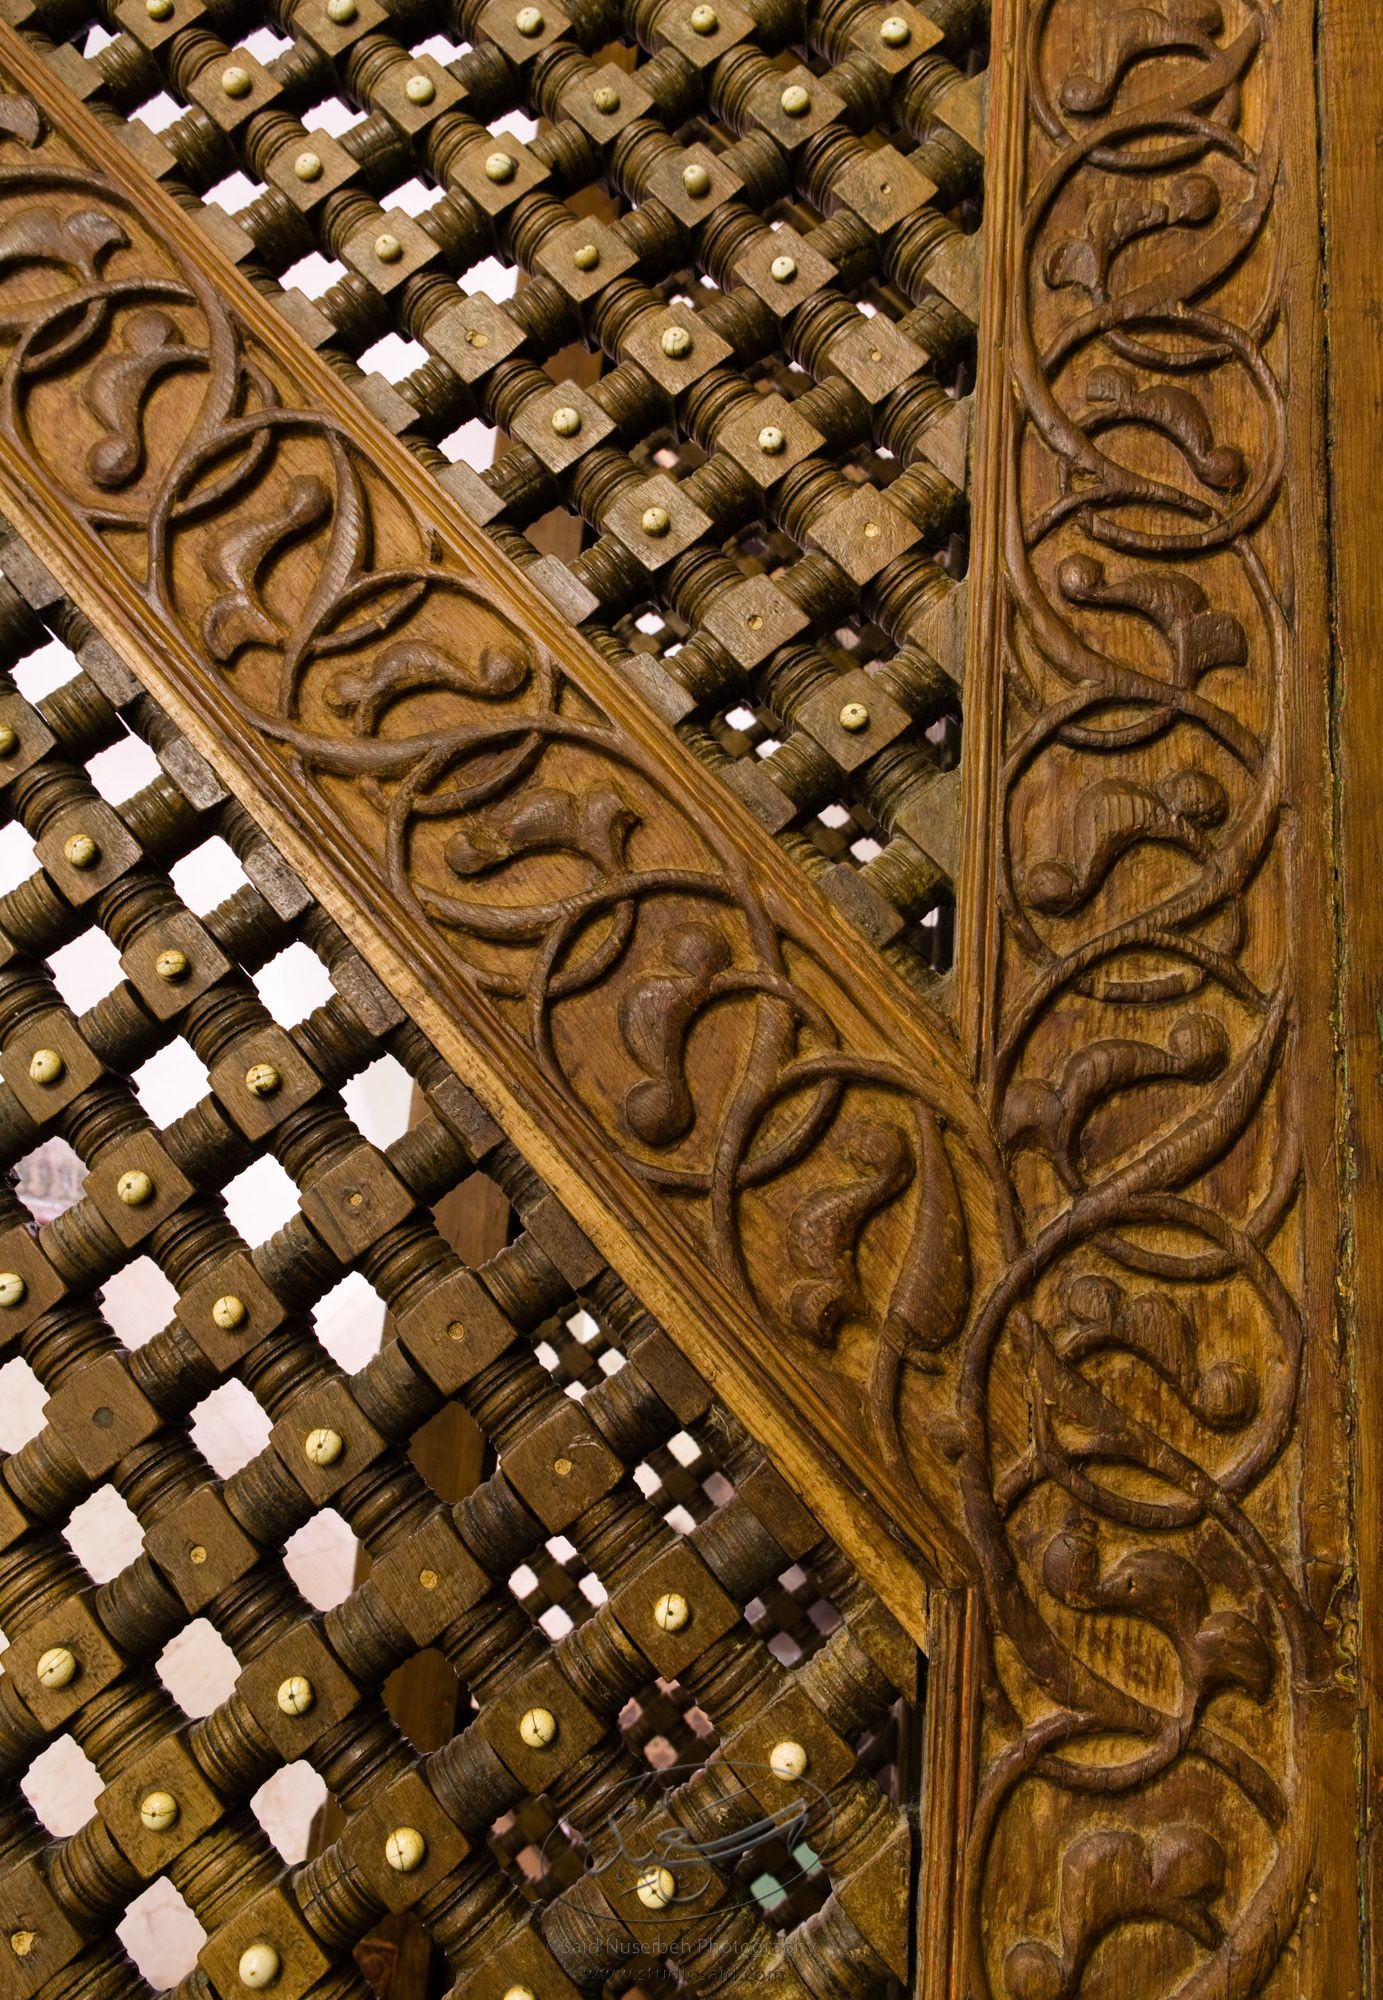 """Mashrabiyya and Floral Interlace. Minbar, Carved Woodwork Detail""The late-13th / early-14th c. Mamluk minbar, or pulpit, of Sultan al-Nasir Muhammad, the ninth Mamluk Sultan from Cairo and son of Qalawun. The minbar was located in the Umayyad Mosque in Aleppo, Haleb, prior to its damage and disappearance in May 2013."